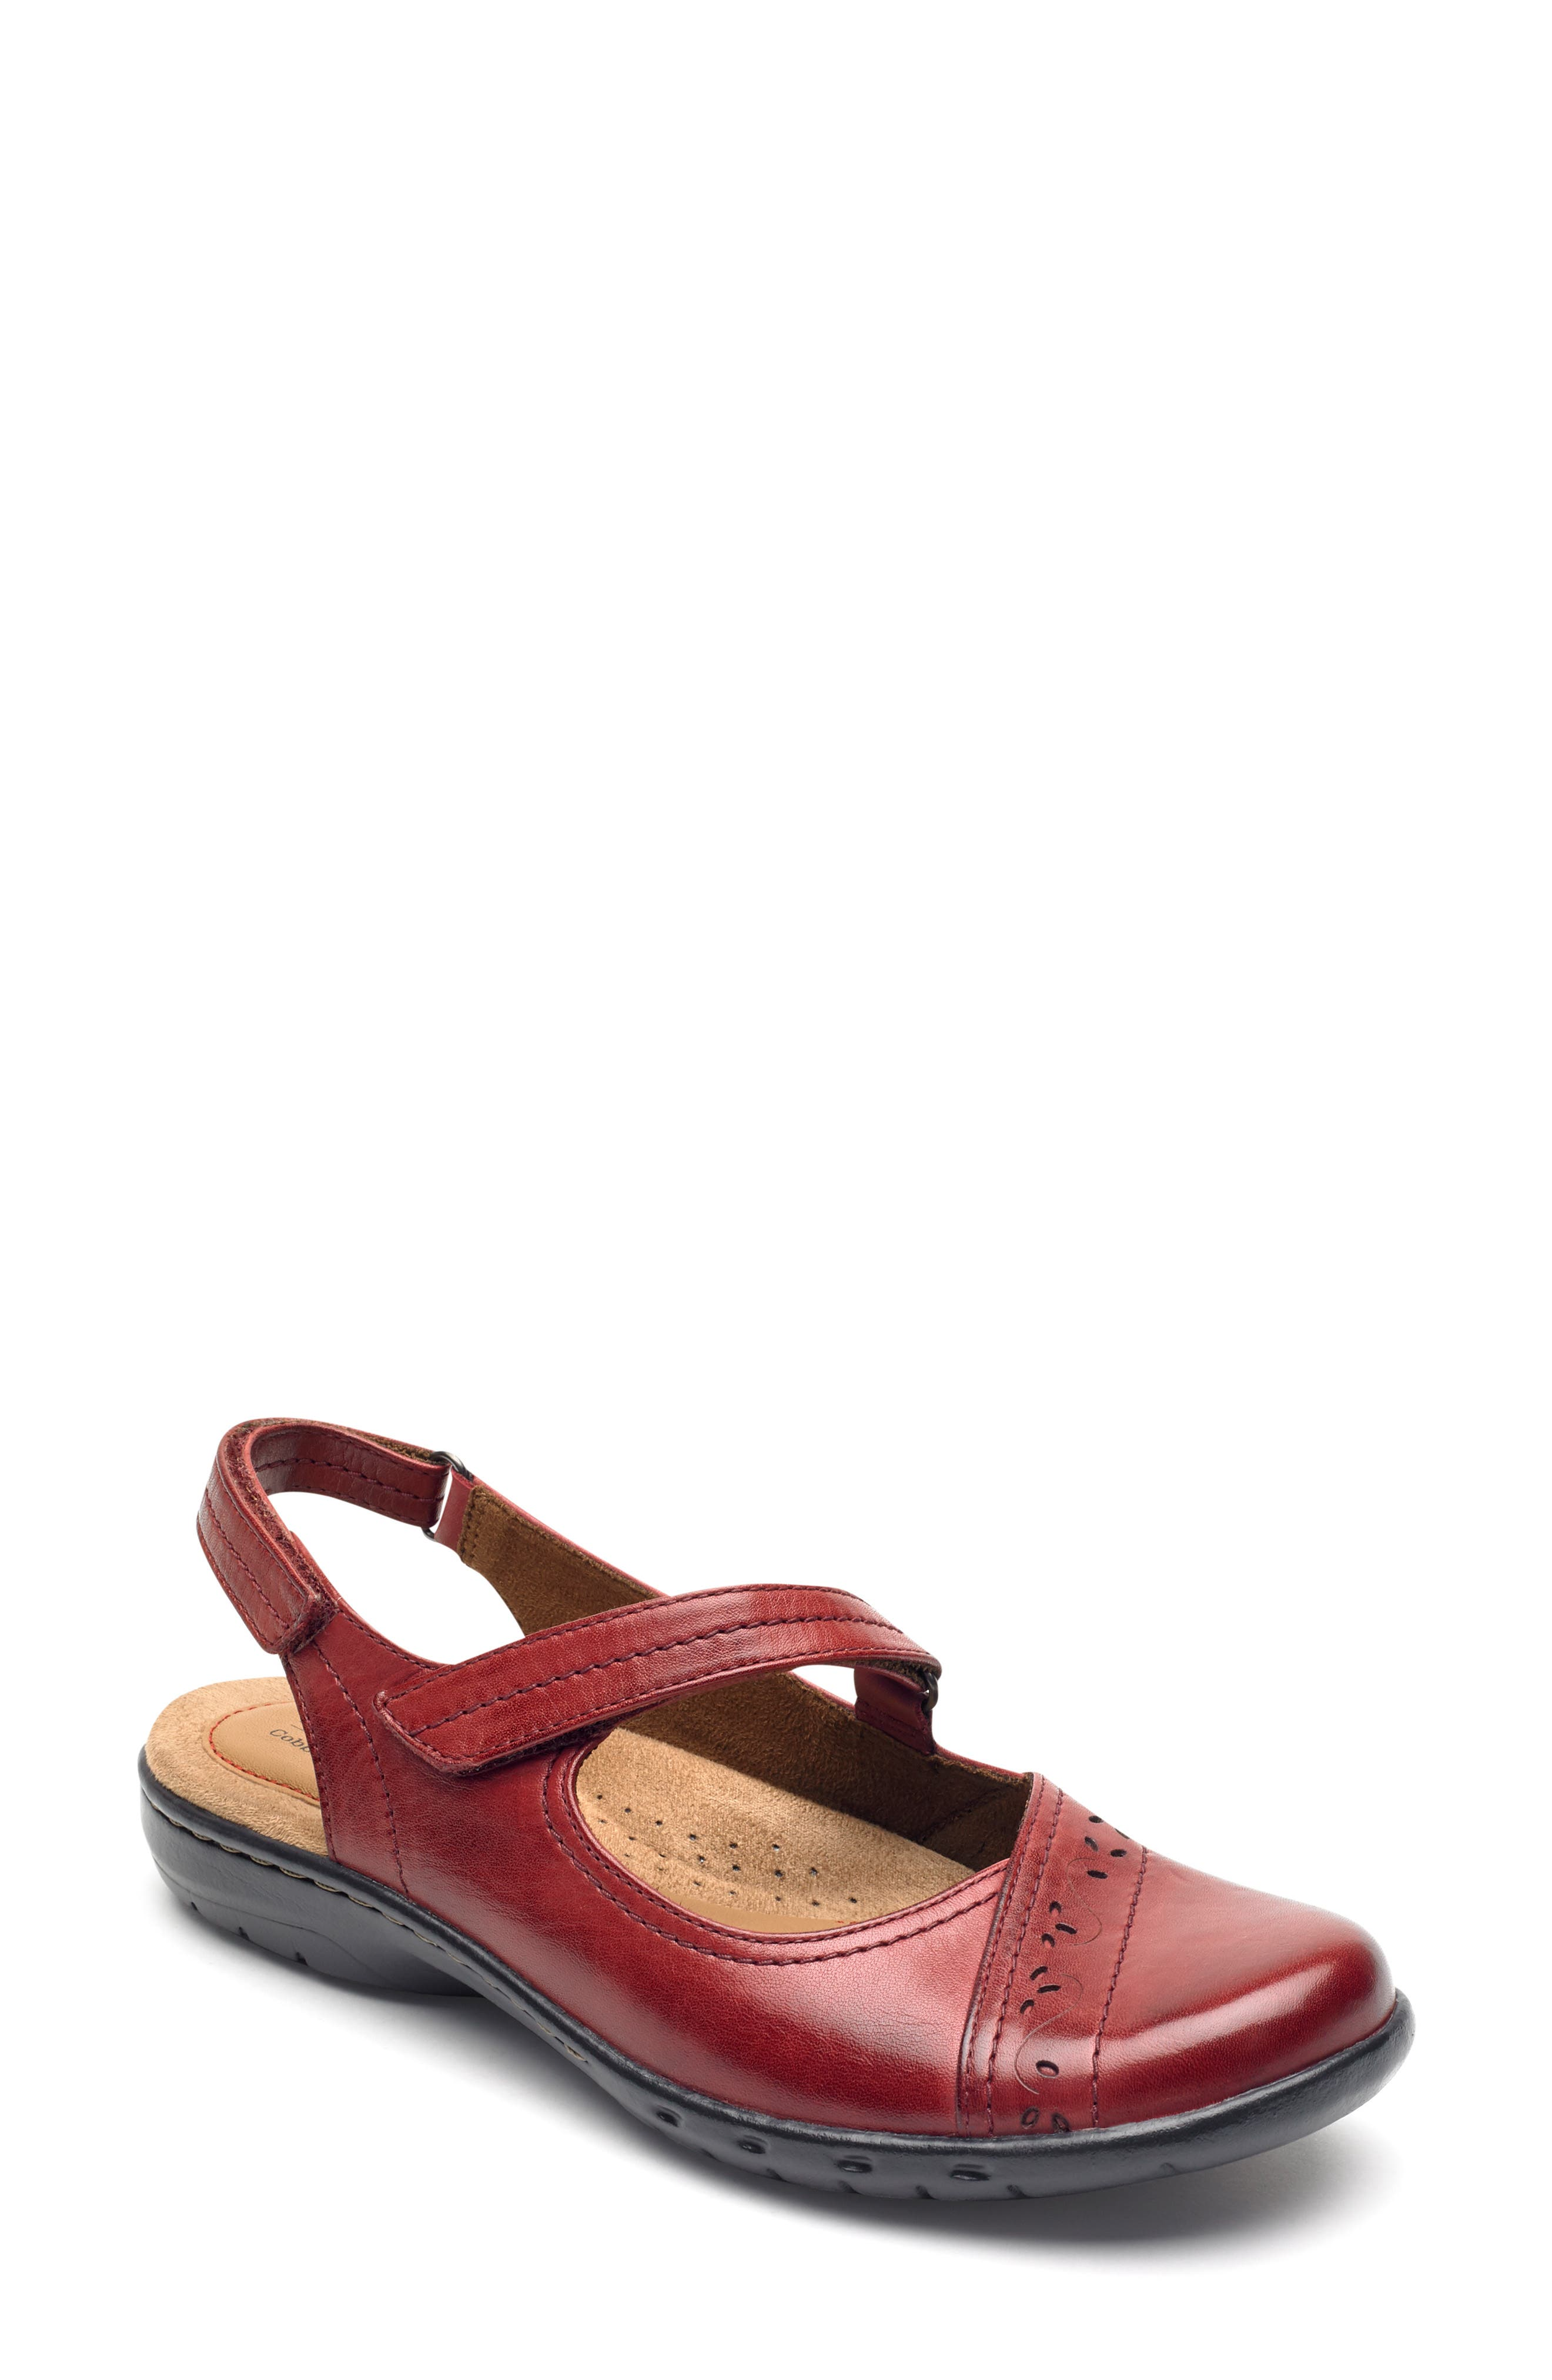 Rockport Cobb Hill Penfield Slingback Mary Jane- Red